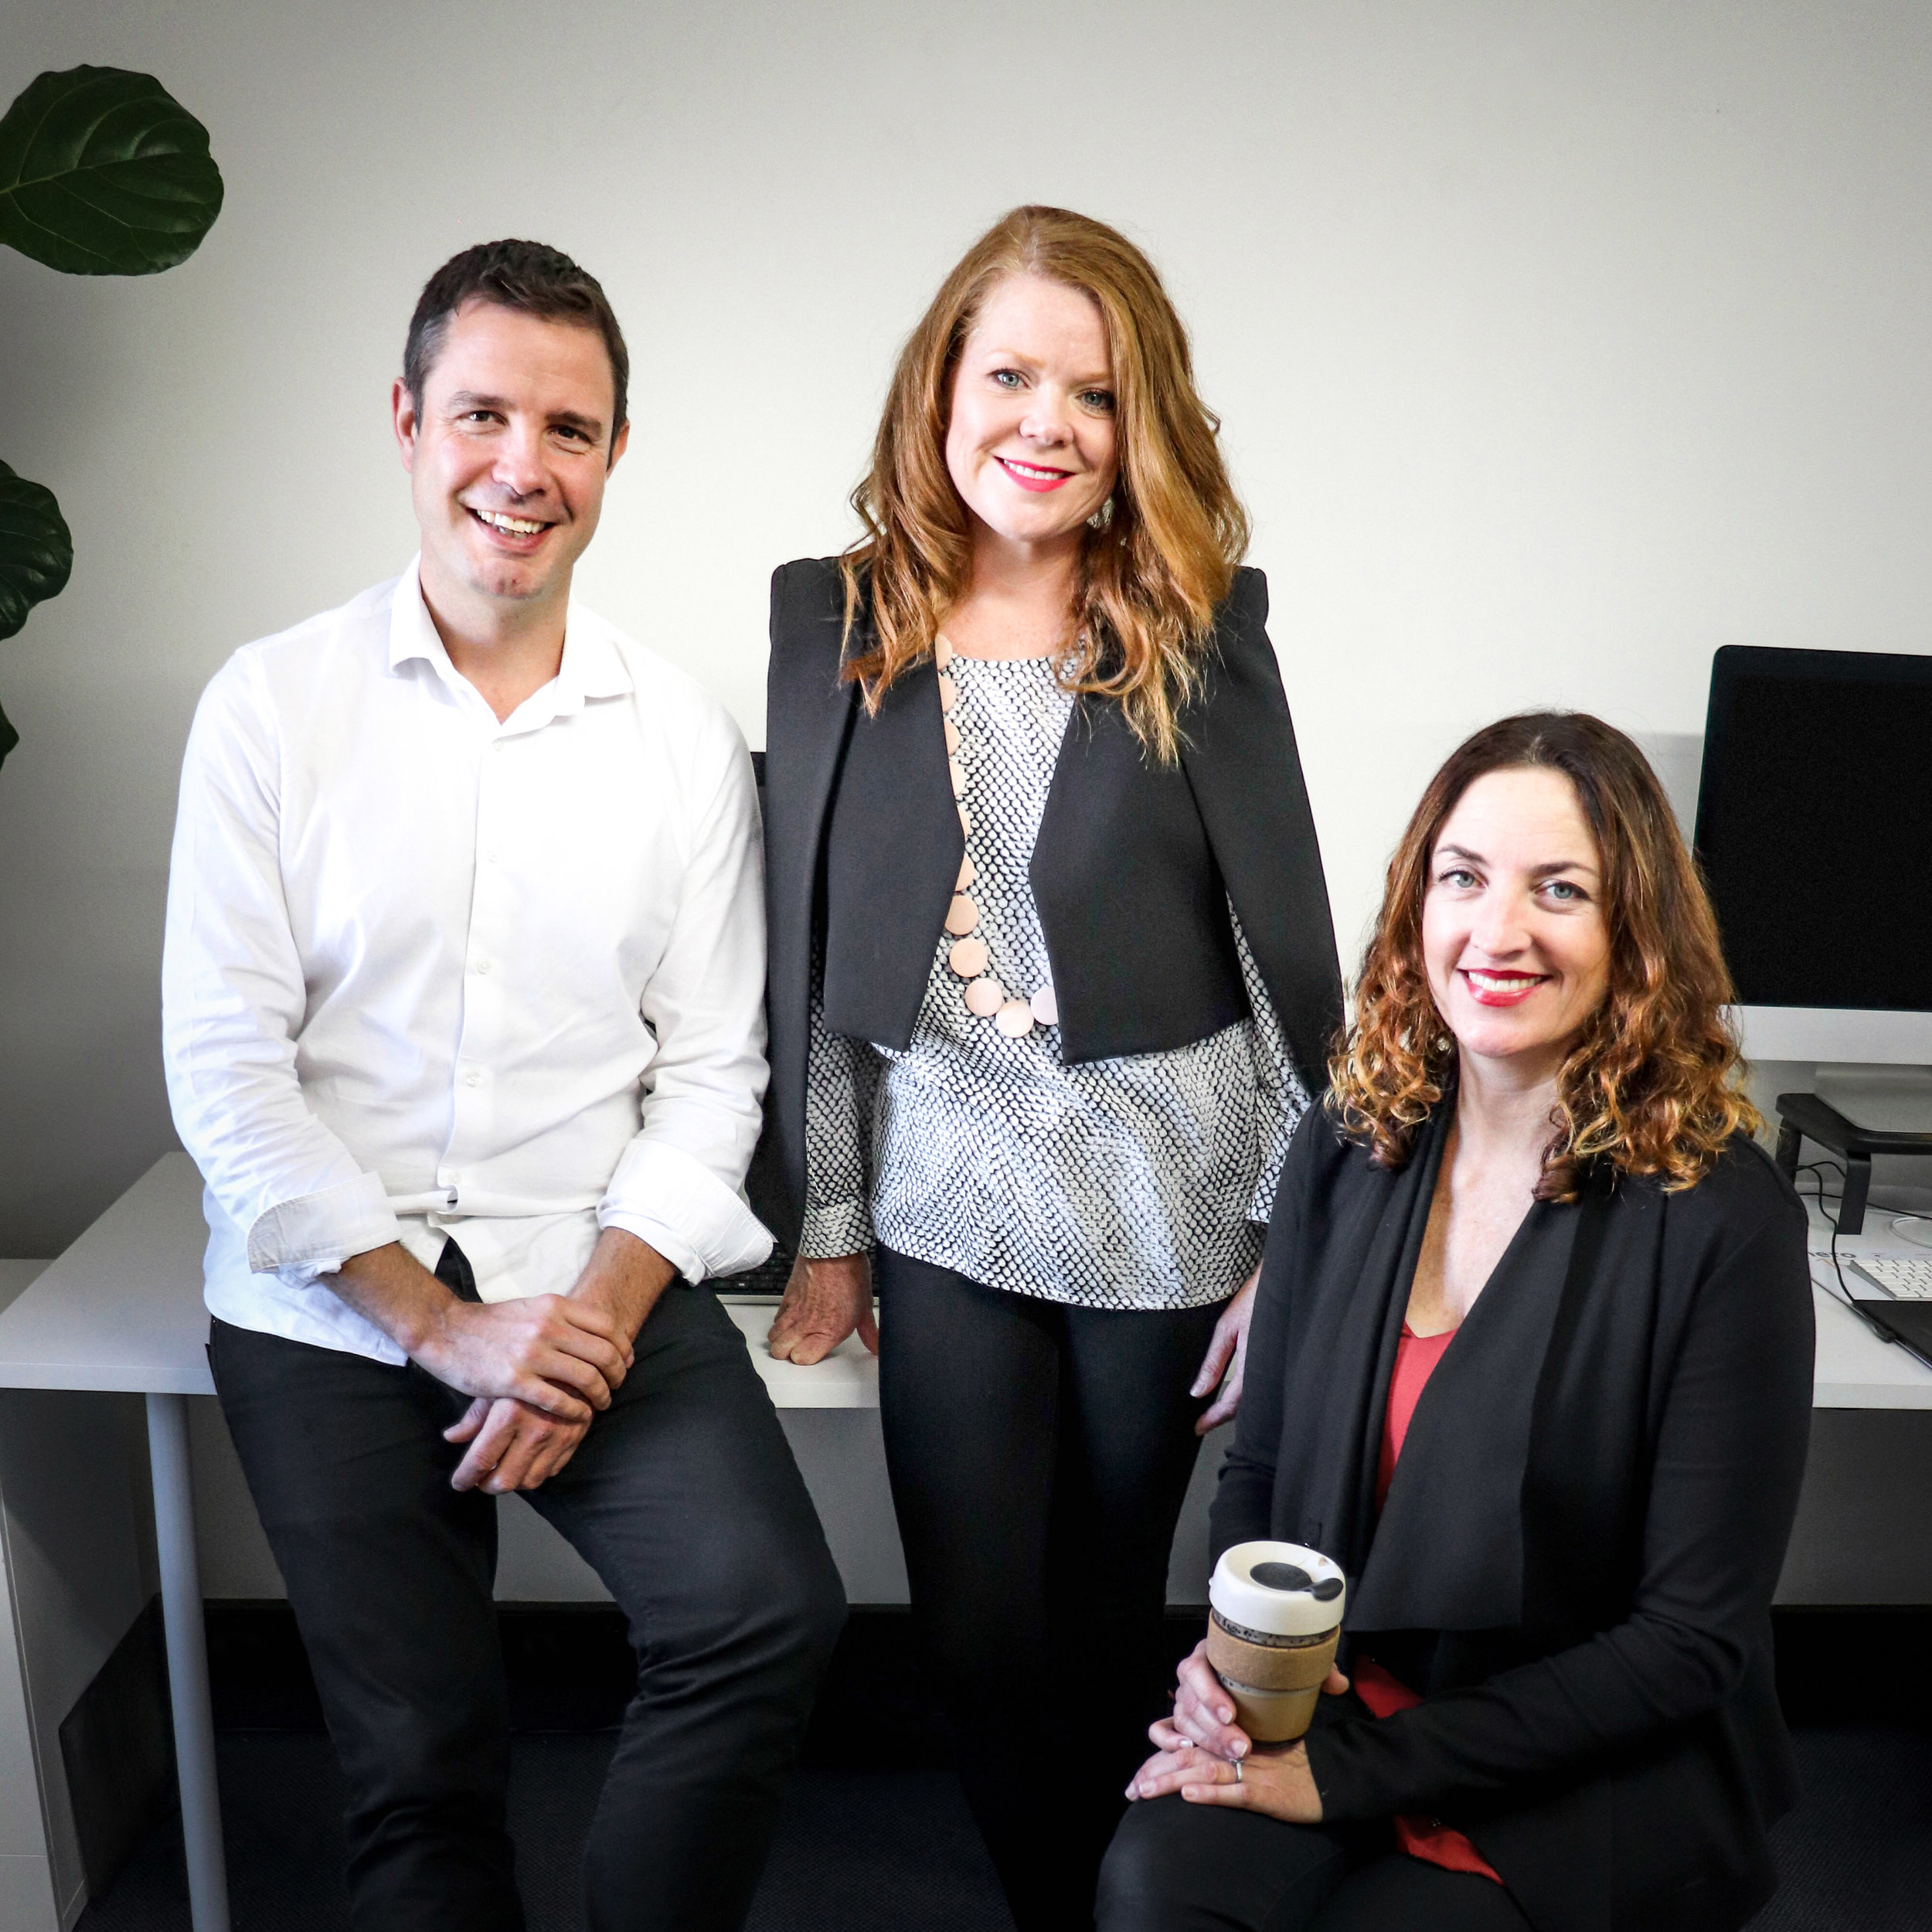 (L-R) Dan Clark - Design Director, Kylie Gould - Founder & Creative Director, Louise Thomas - Brand Strategist.